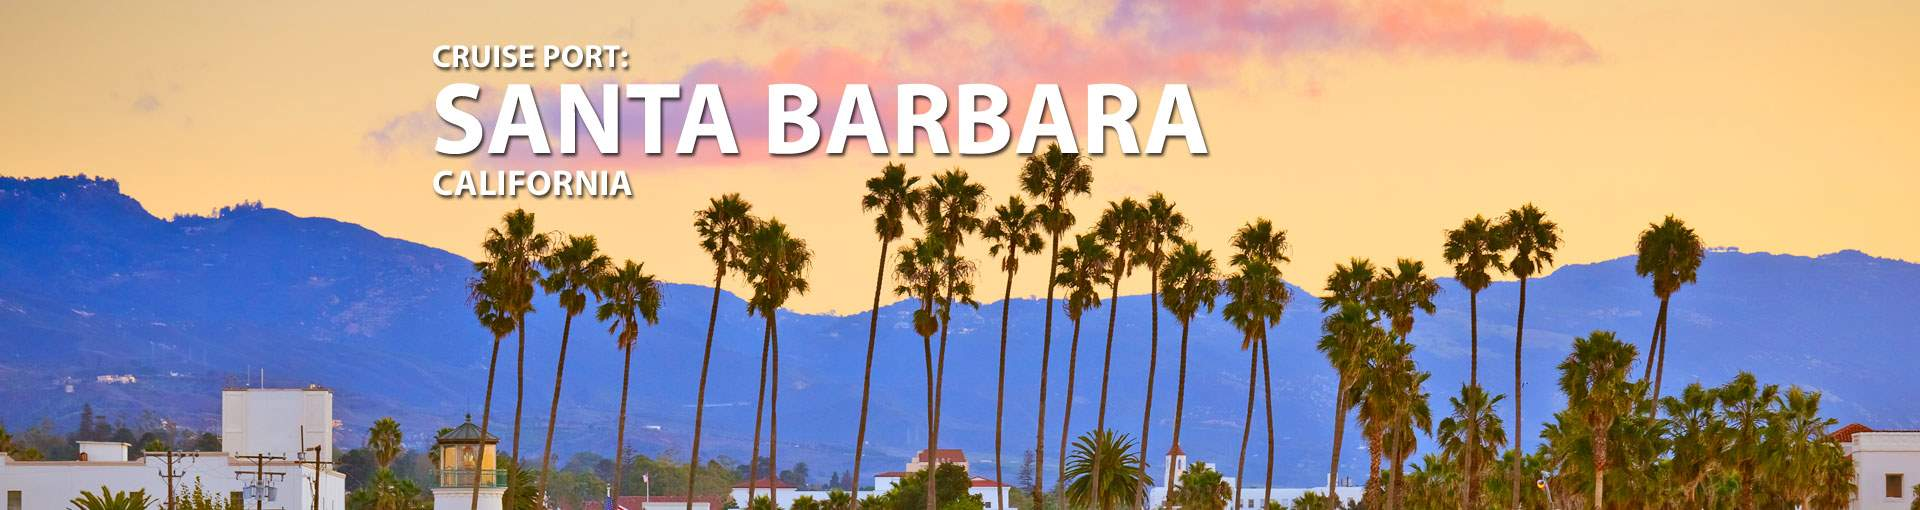 Cruises to Santa Barbara, California